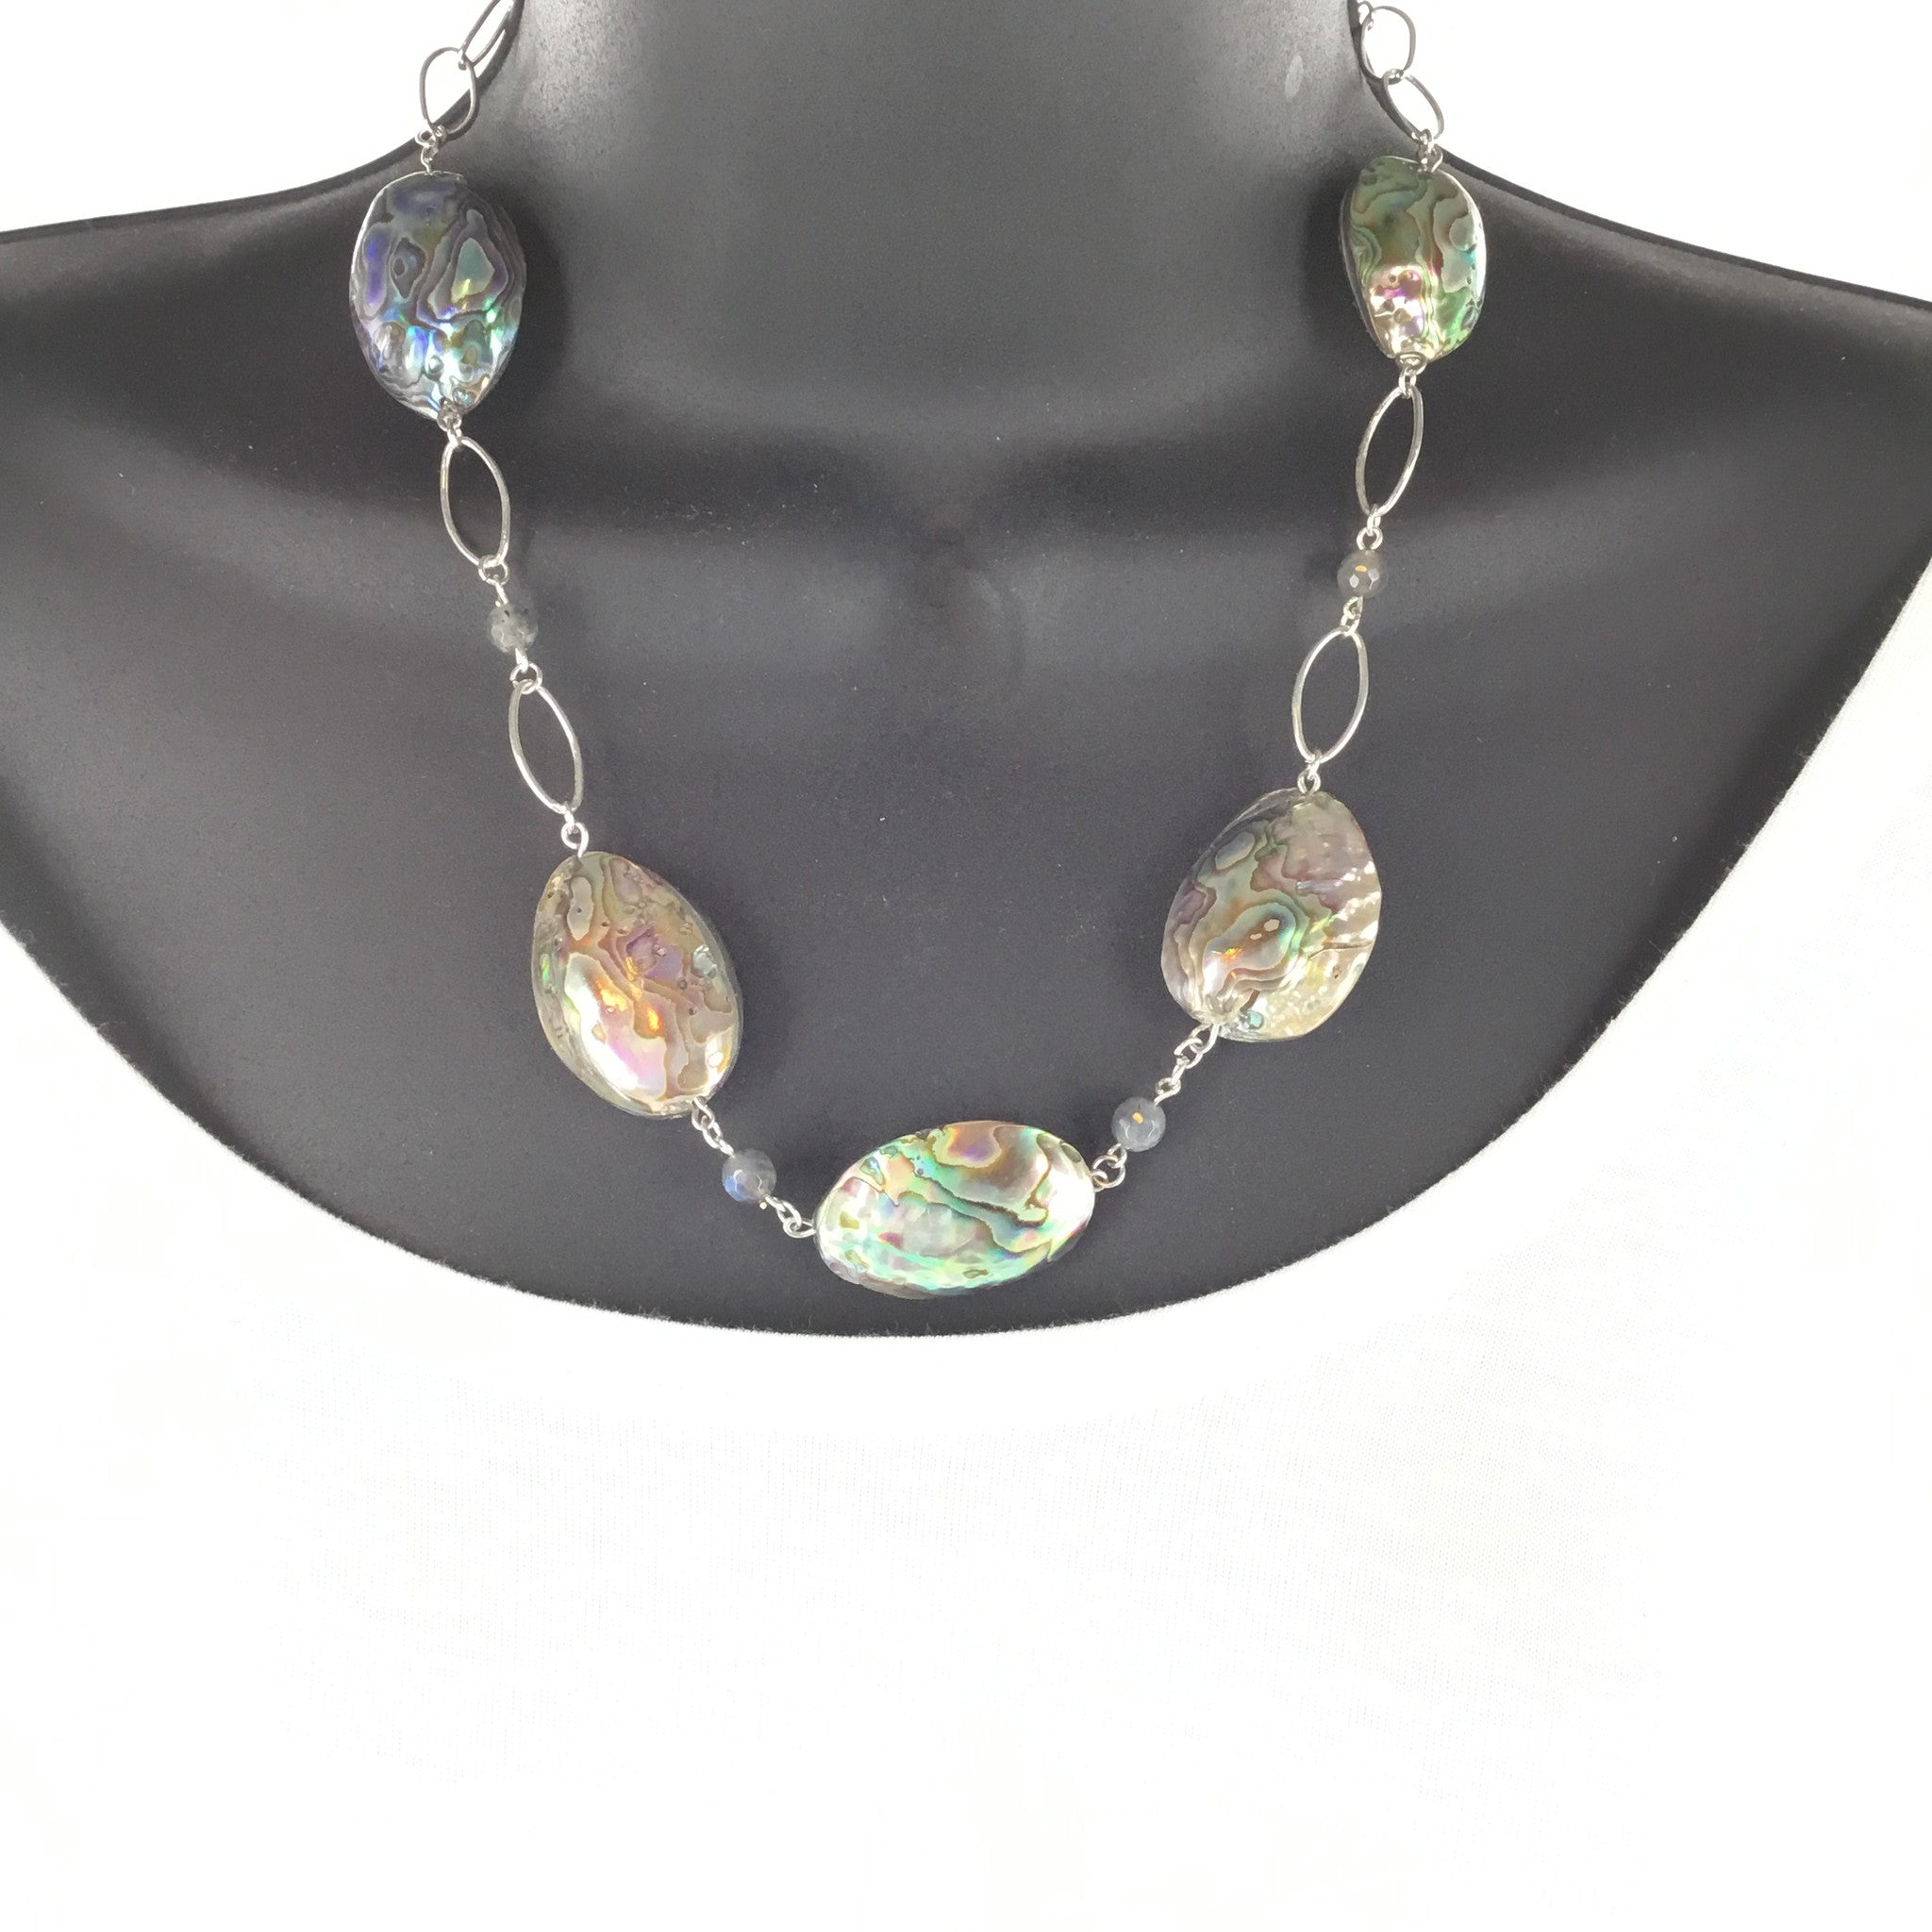 Abalone and Labradorite Necklace - Real Chic Boutique  - 3